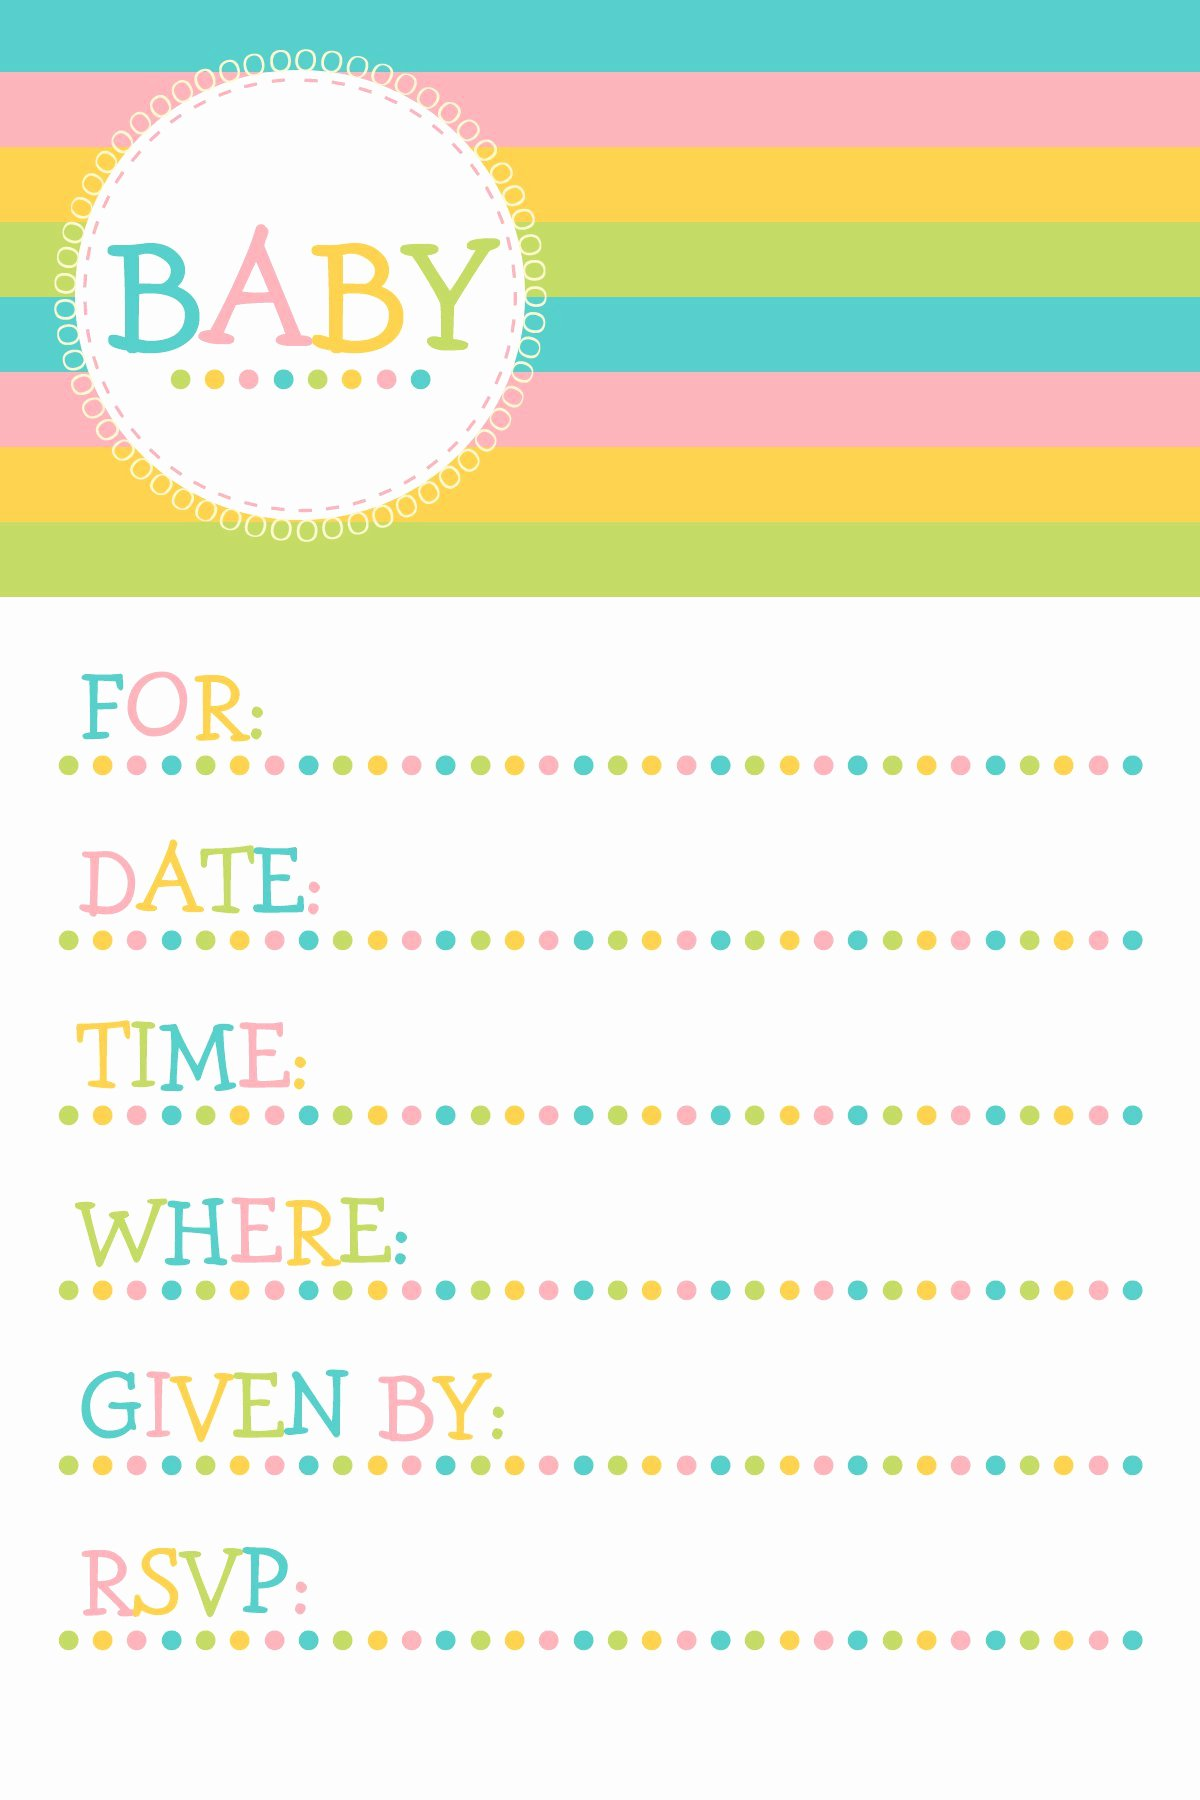 Template for Baby Shower Invitation New Invitations Design Inspiration Unique Winter Party